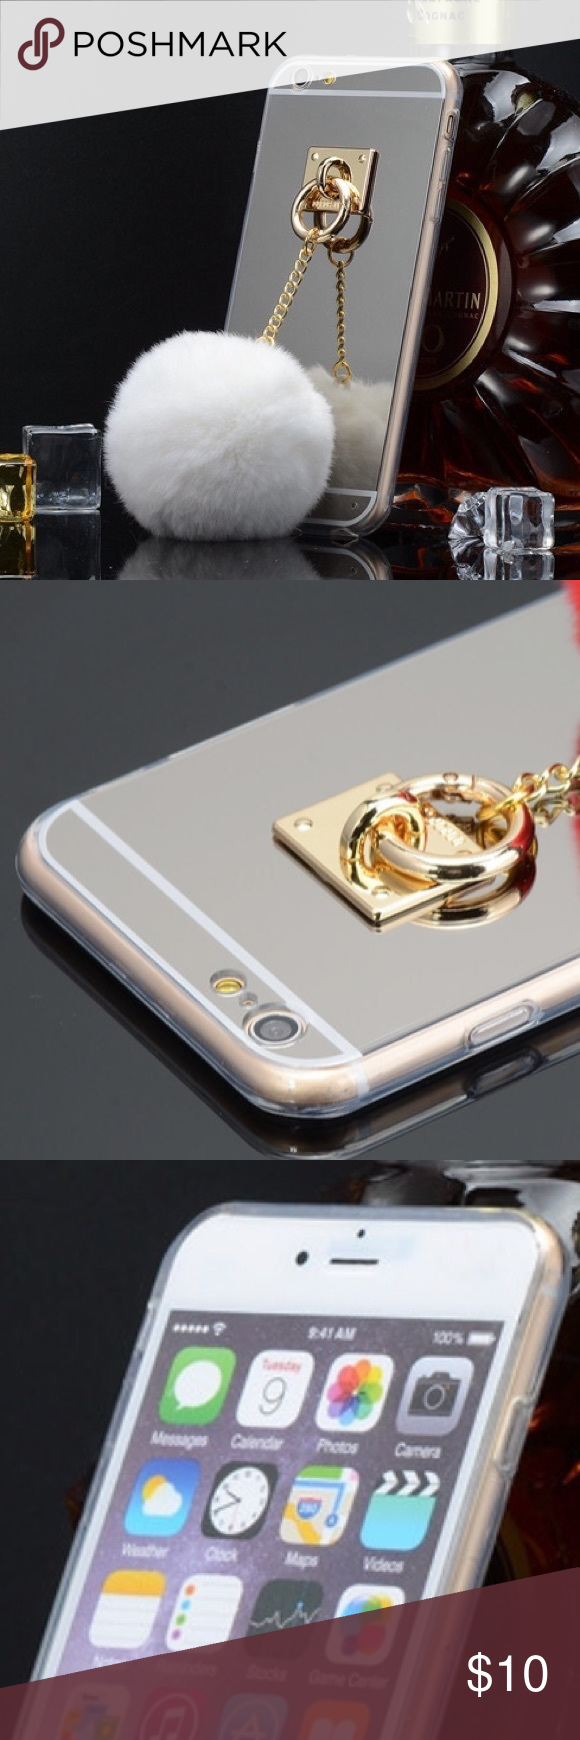 Mirror and fur ball iPhone 6/6s case Silver mirror case with gold color chain and white fur ball. For an iPhone 6/6s Accessories Phone Cases